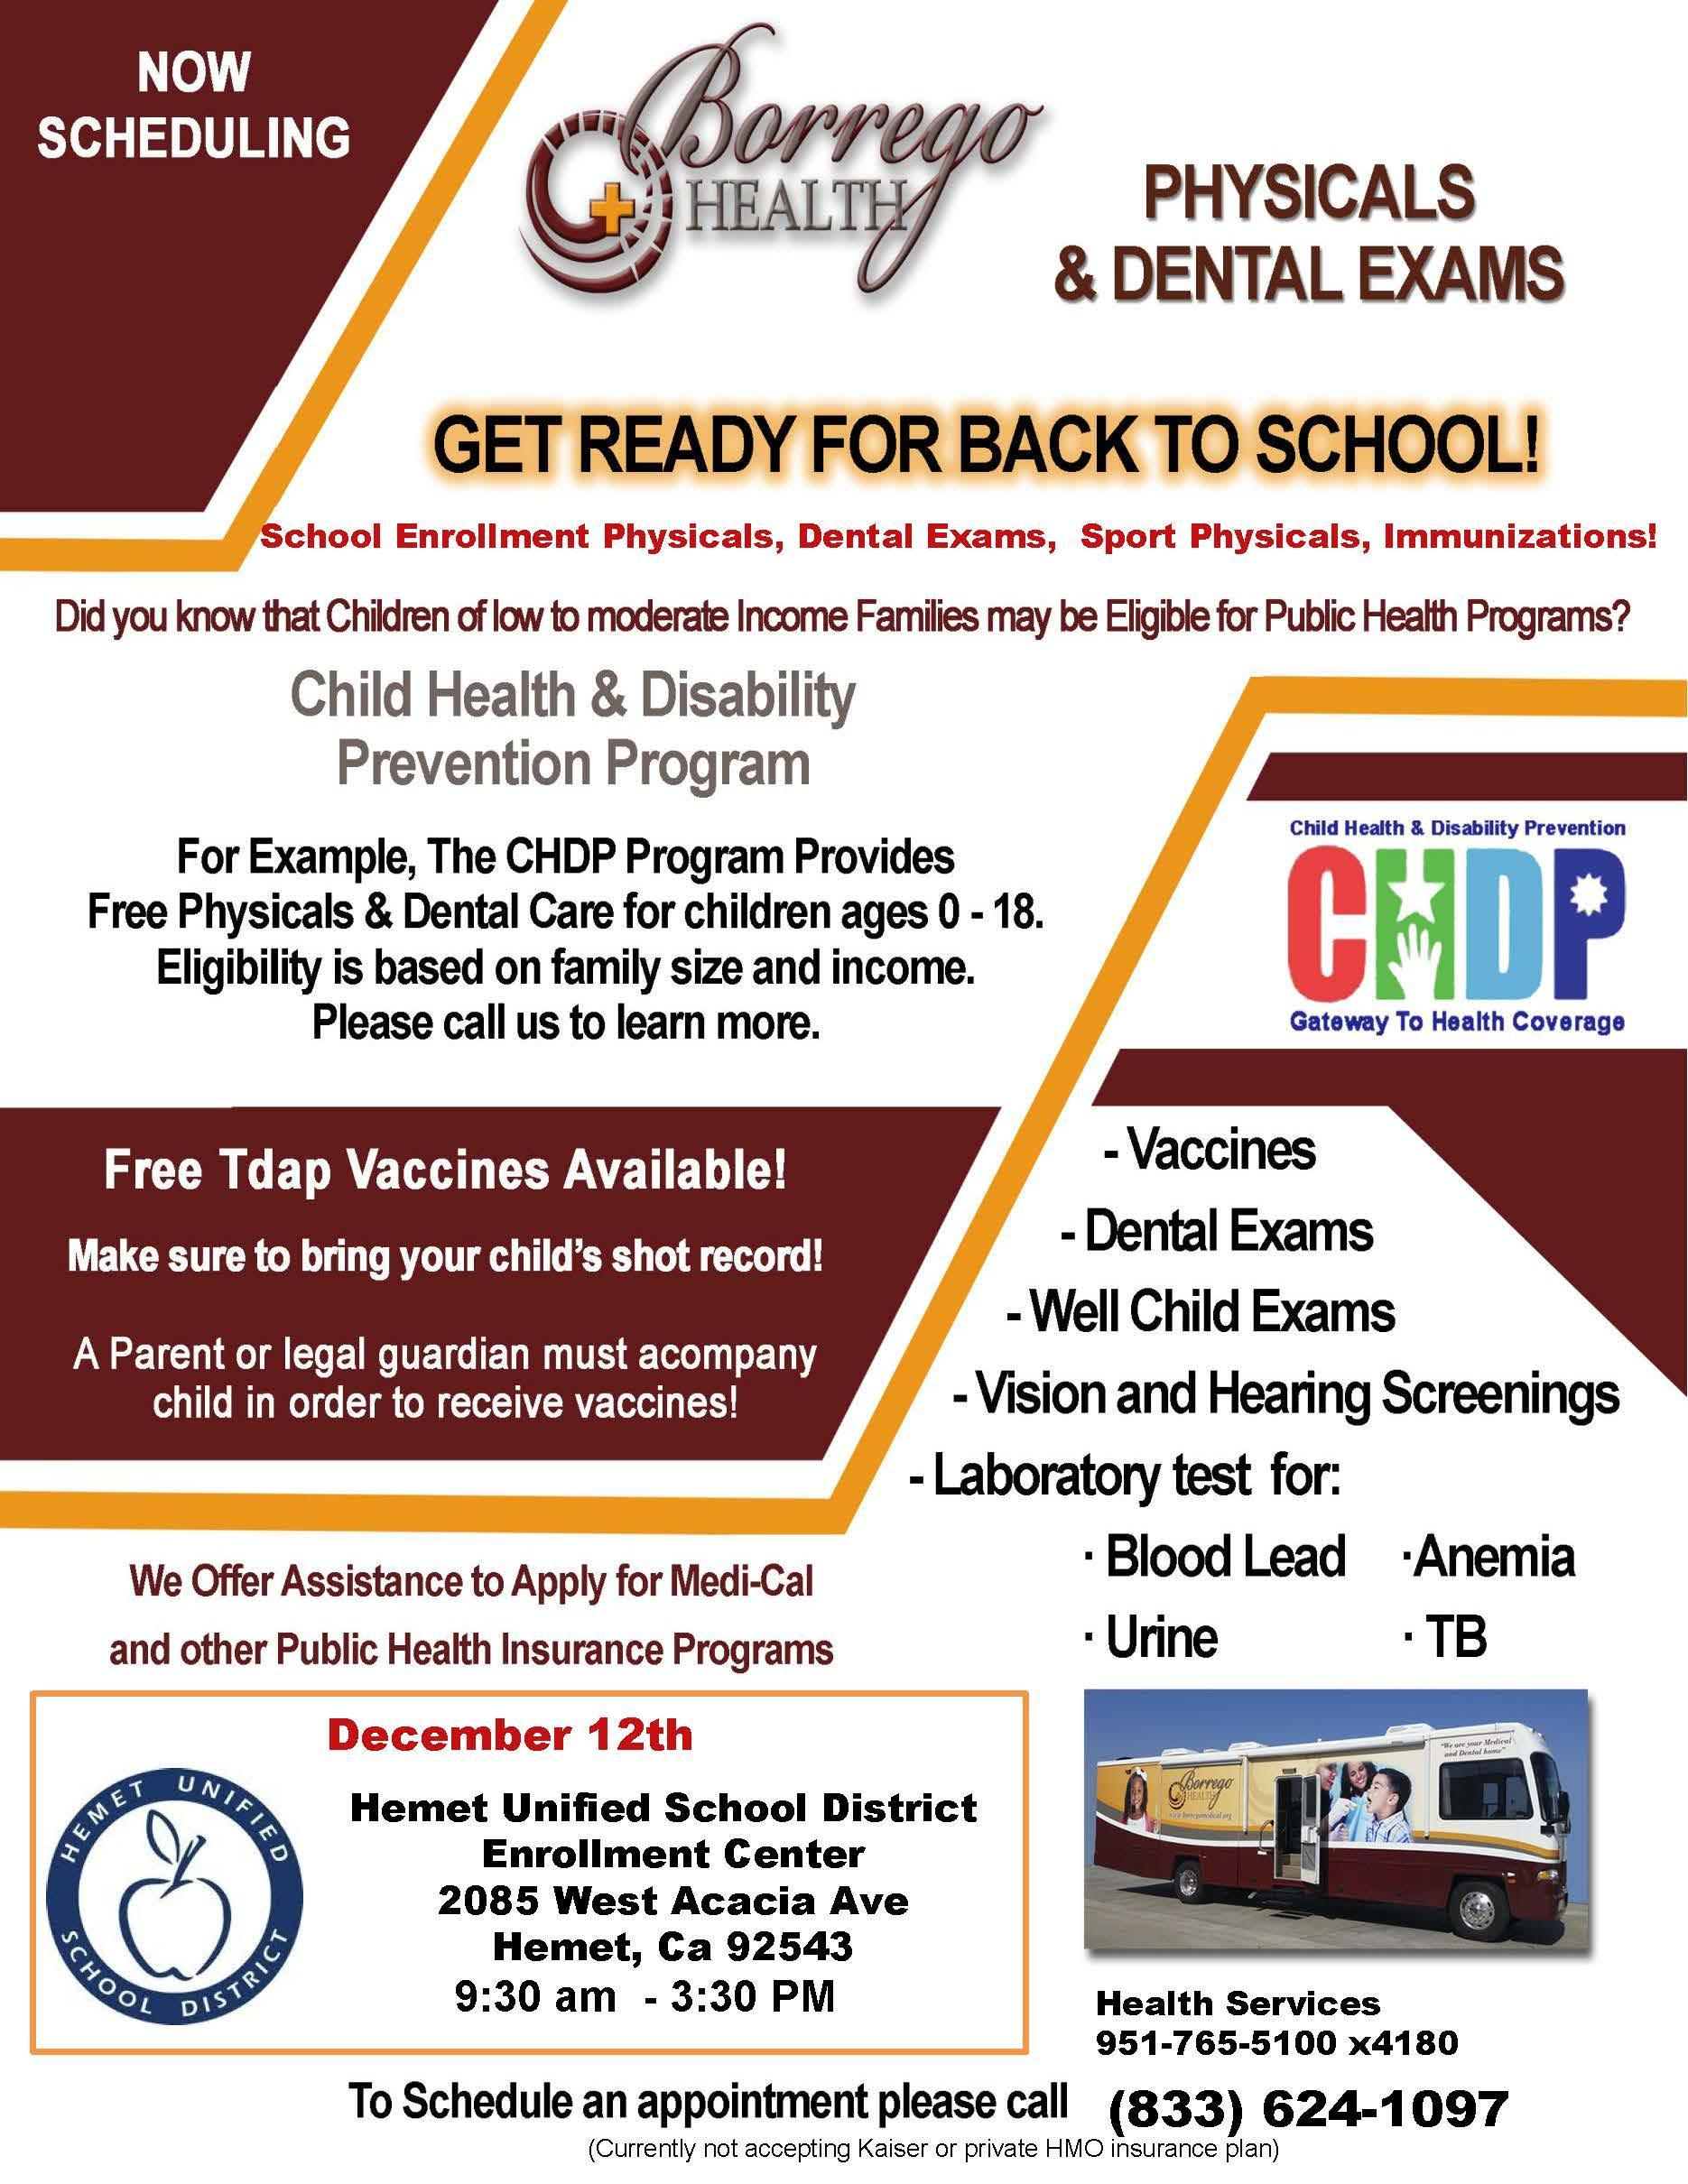 December 12th (833)624-1097 School Enrollment Physicals, Dental Exams, Sport Physicals, Immunizations! (Currently not accepting Kaiser or private HMO insurance plan) 9:30 am - 3:30 PM Health Services 951-765-5100 x4180 Hemet Unified School District Enrollment Center 2085 West Acacia Ave Hemet, Ca 92543